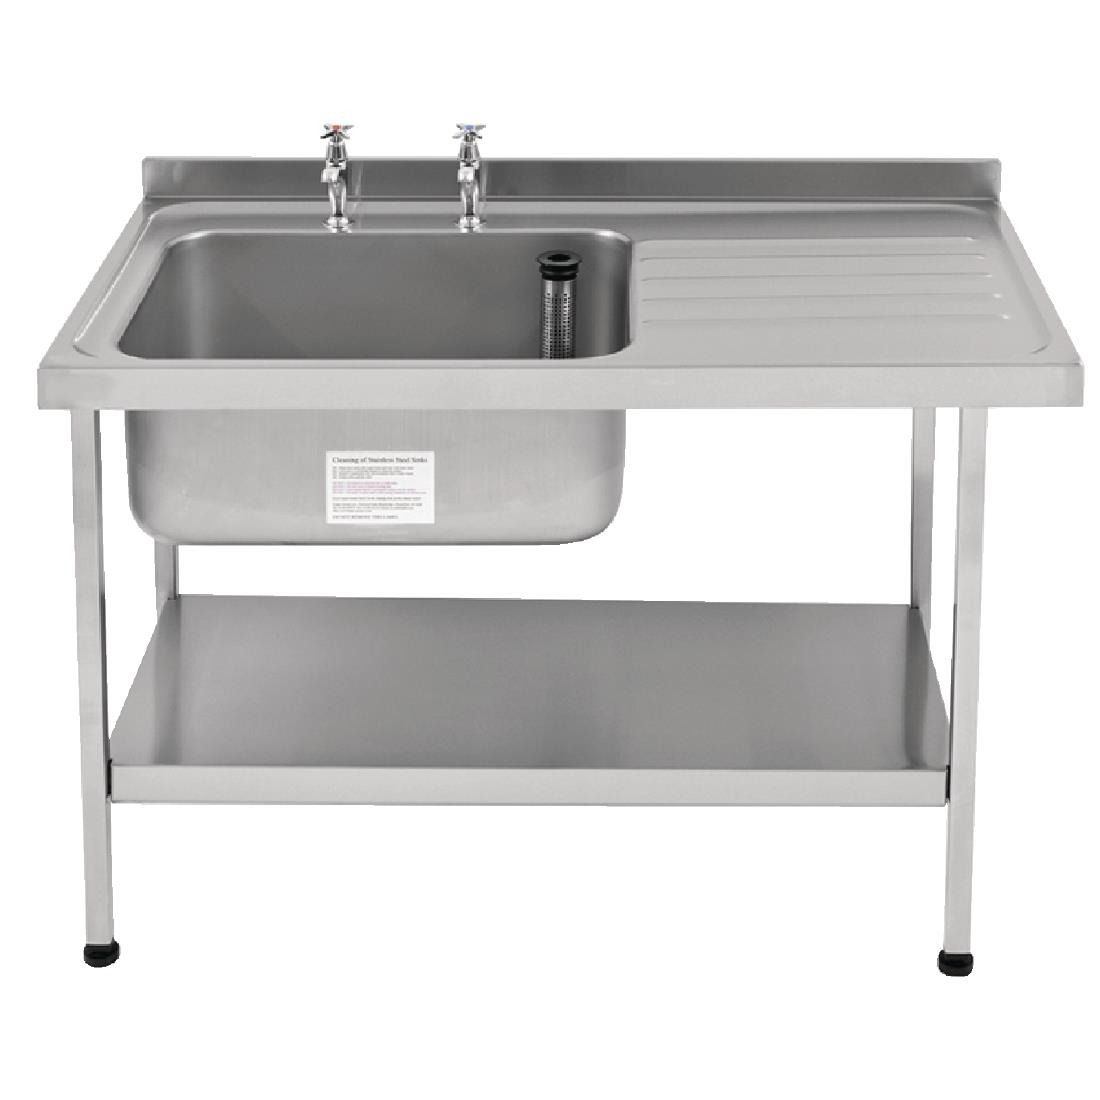 Franke Self Assembly Stainless Steel Sink Left Hand Bowl 1500x 650mm - P367